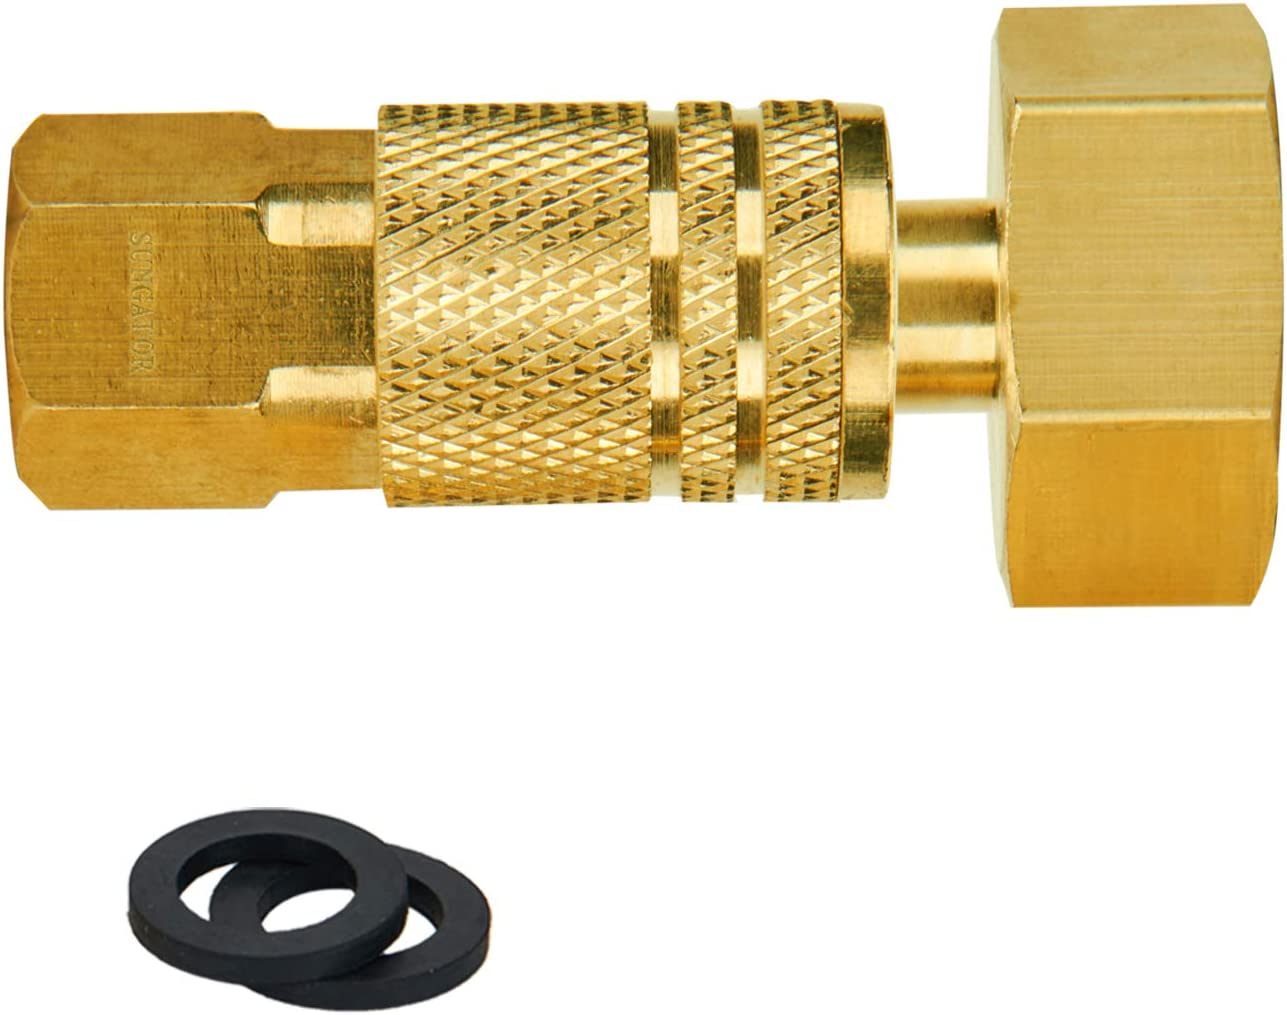 """SUNGATOR Winterize Sprinkler Systems Plug, 2-Pack Water Blow Out Plug Fitting with 6-Ball Air Quick Connector, 3/4"""" GHT Female Adapter for Winterize Water Lines, Garden Hose, Irrigation Systems"""